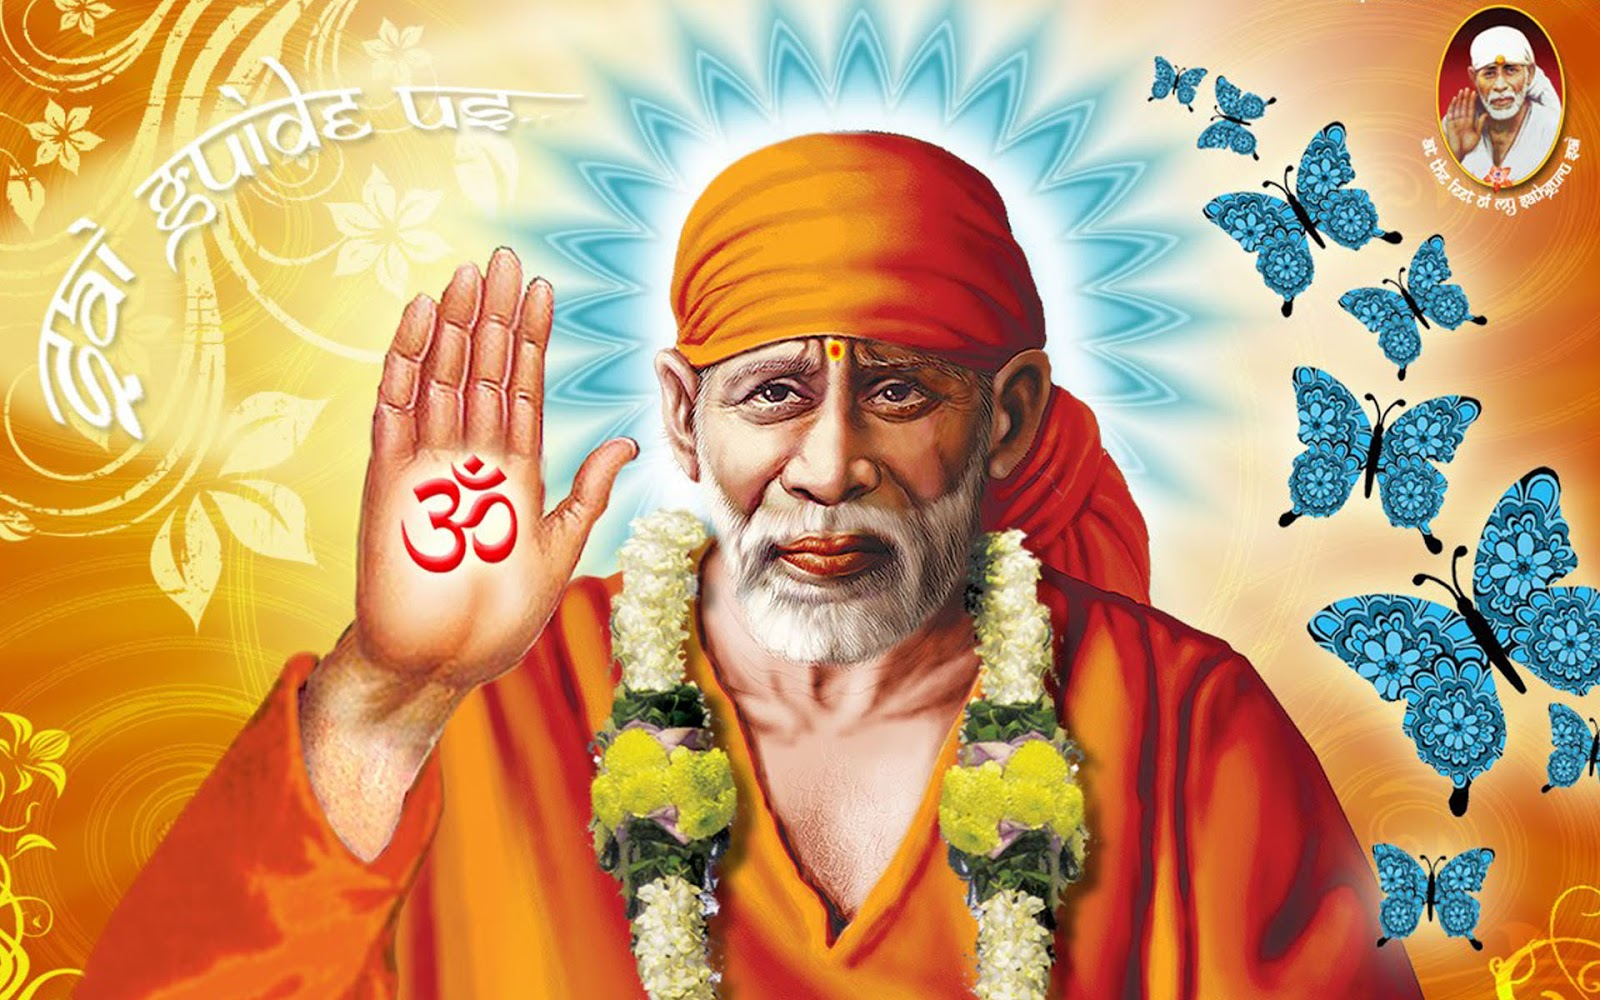 Sai Baba Cool And Hd Wallpapers Naughty Nudity